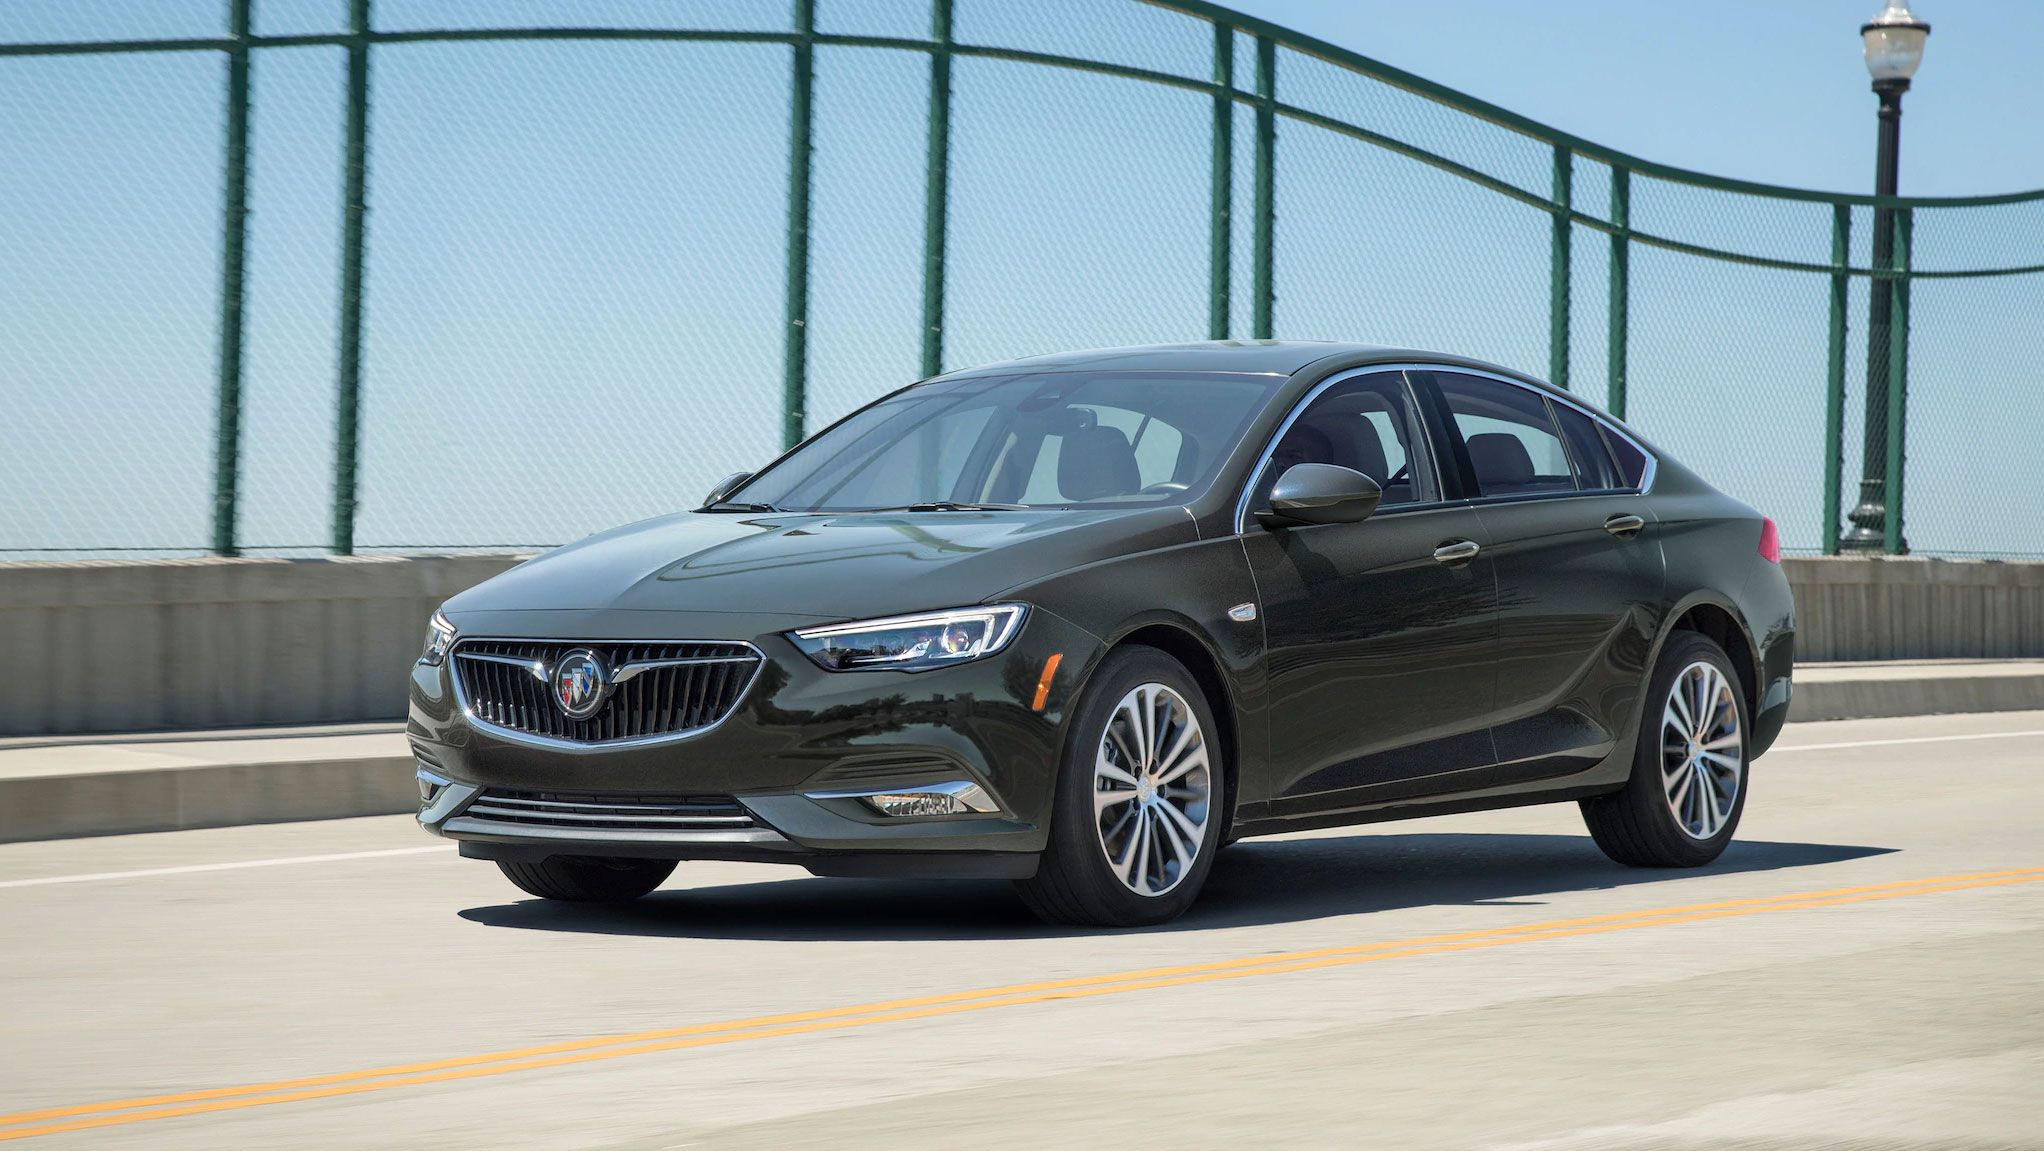 2020 Buick Regal Sportback Review, Pricing, And Specs 2021 Buick Regal Pictures, Price, Reviews